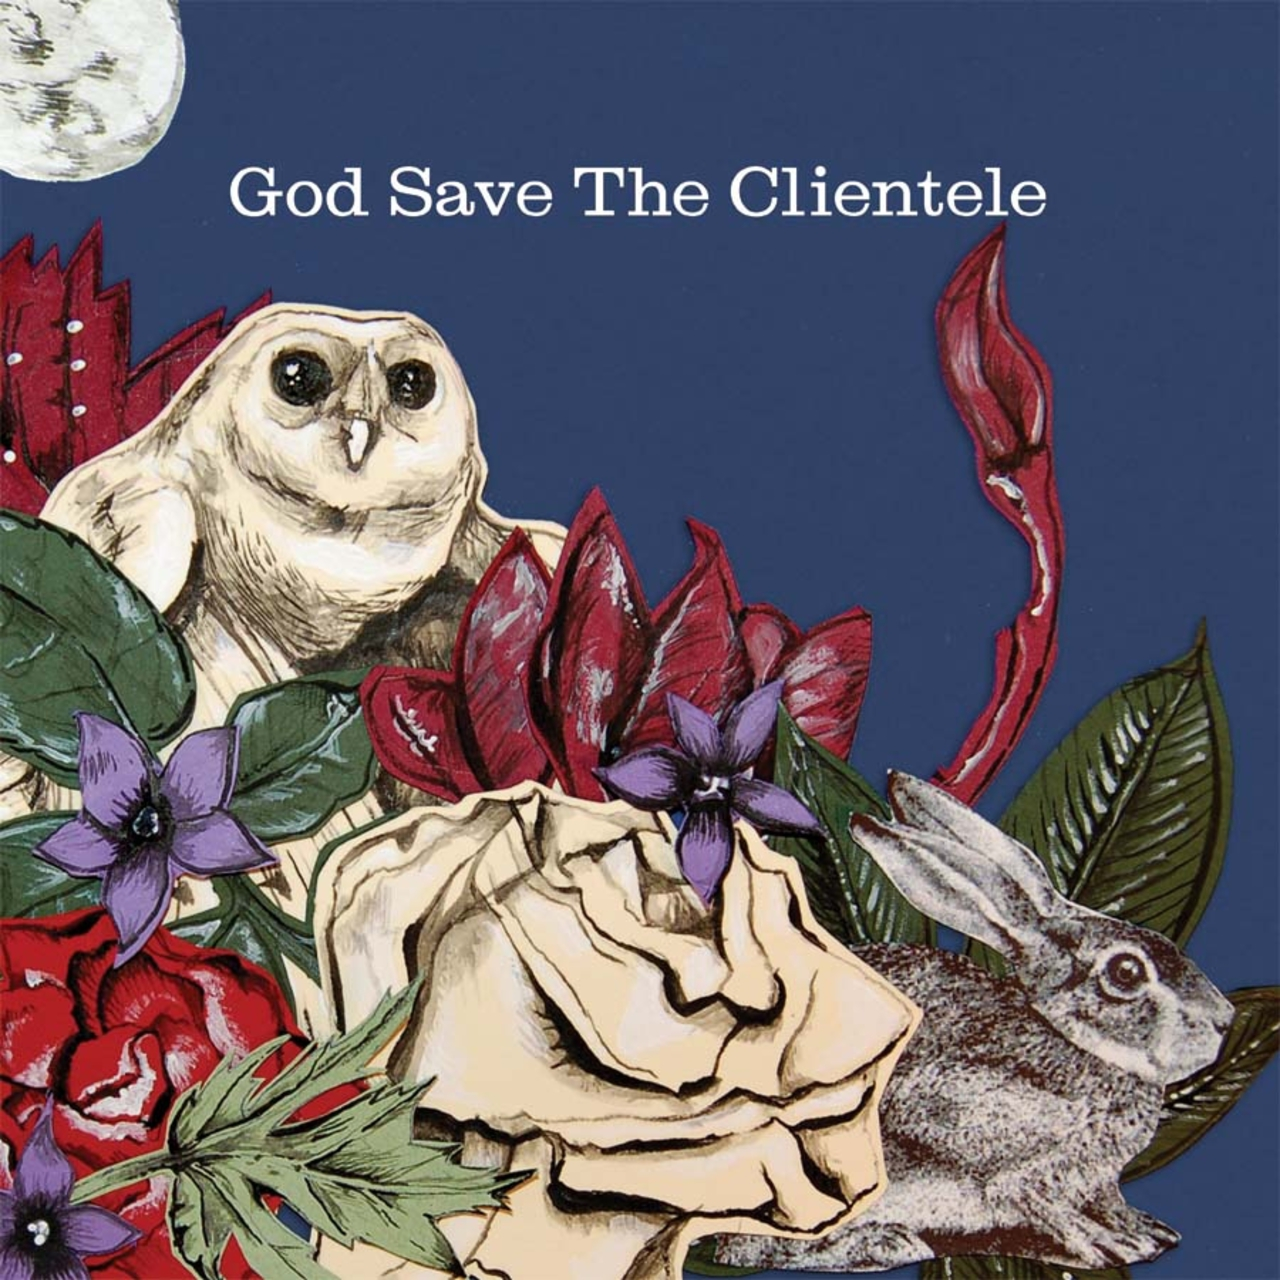 The Clientele's God Save The Clientele is out now.